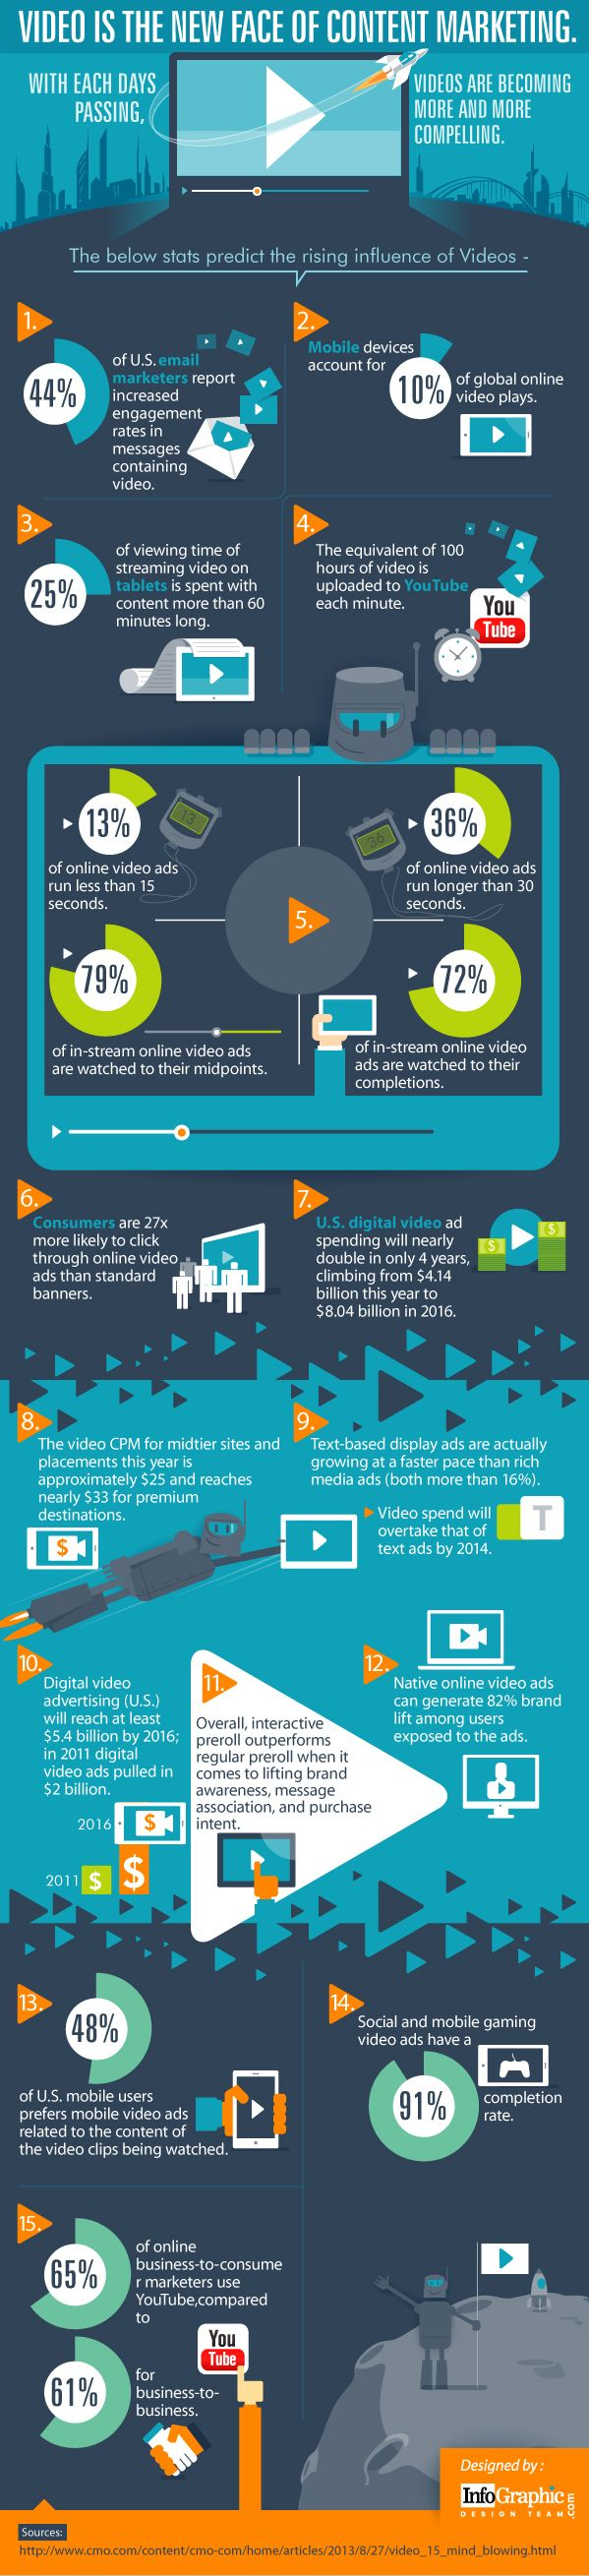 Videos: The Modern Form Of Content Marketing - infographic